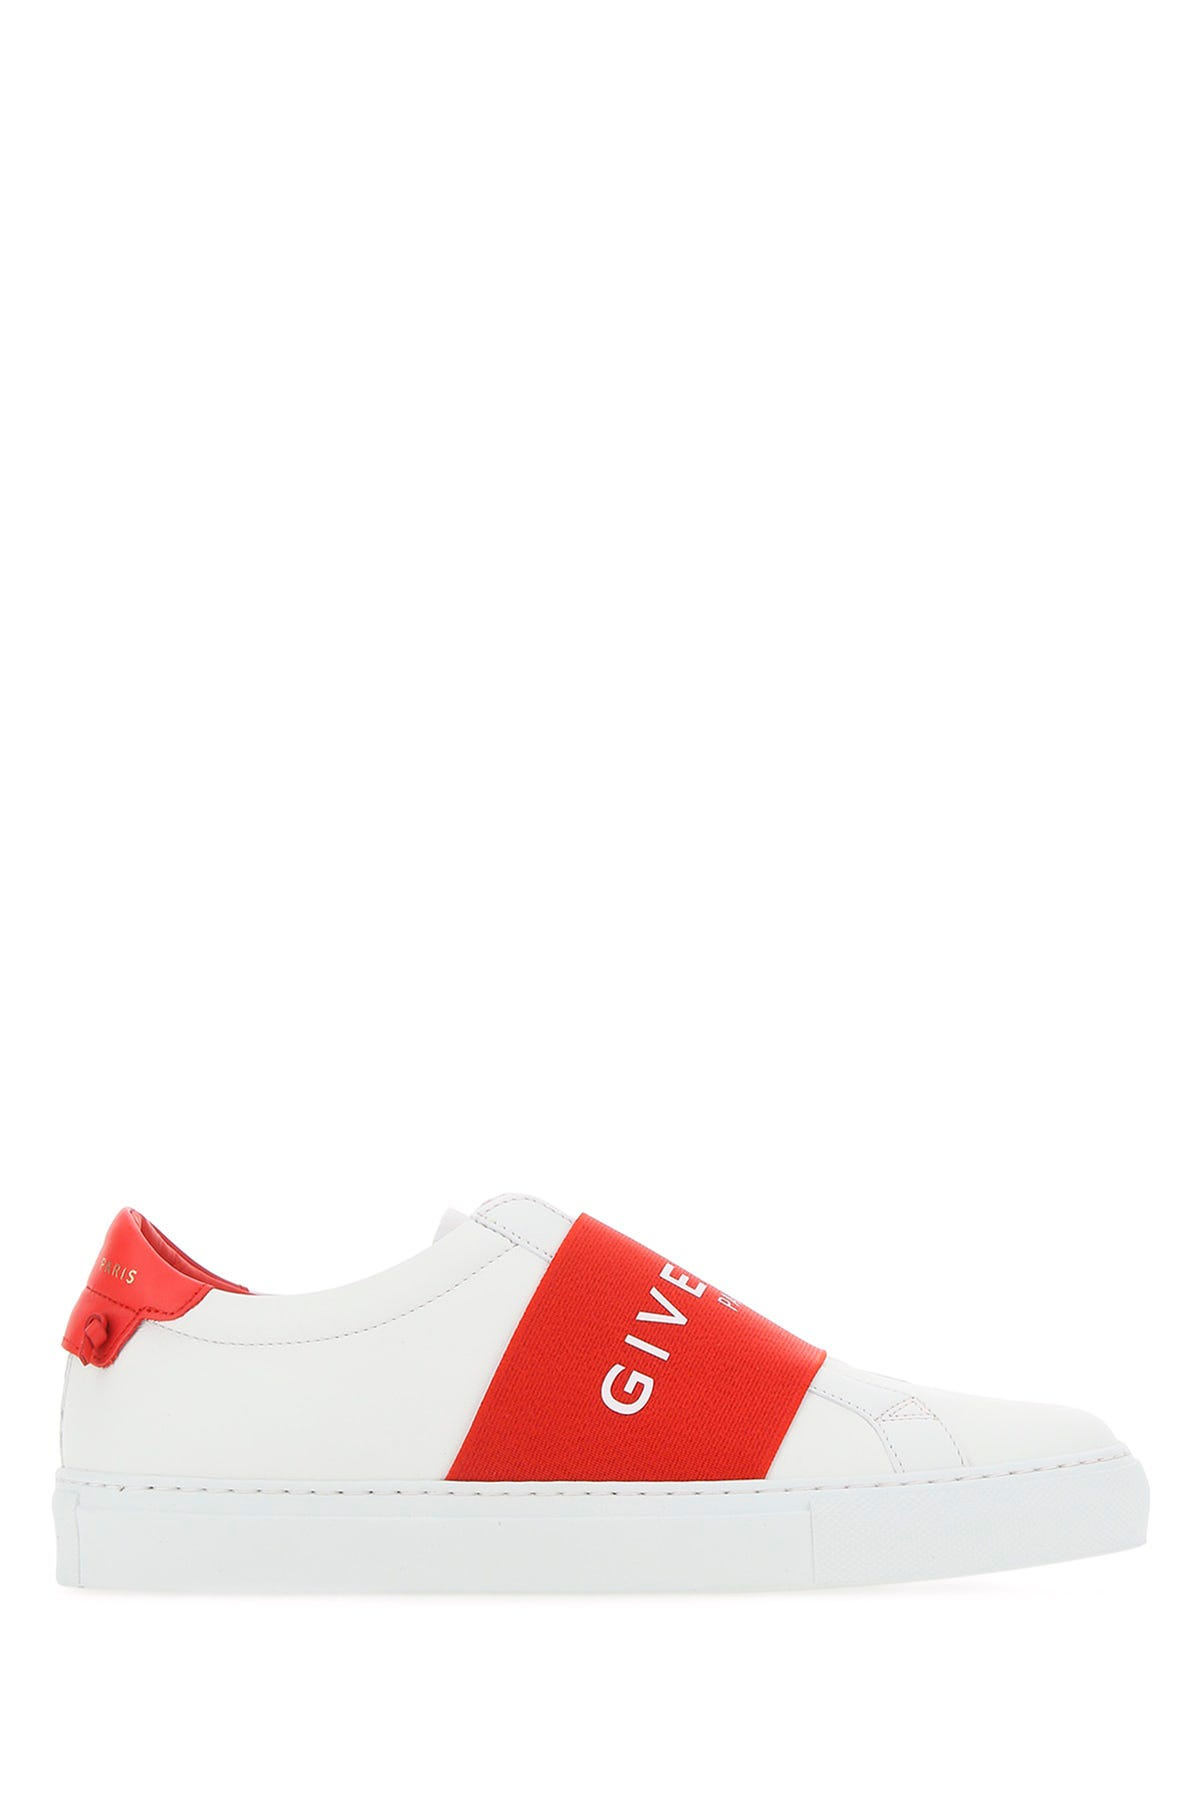 Givenchy SNEAKERS-39